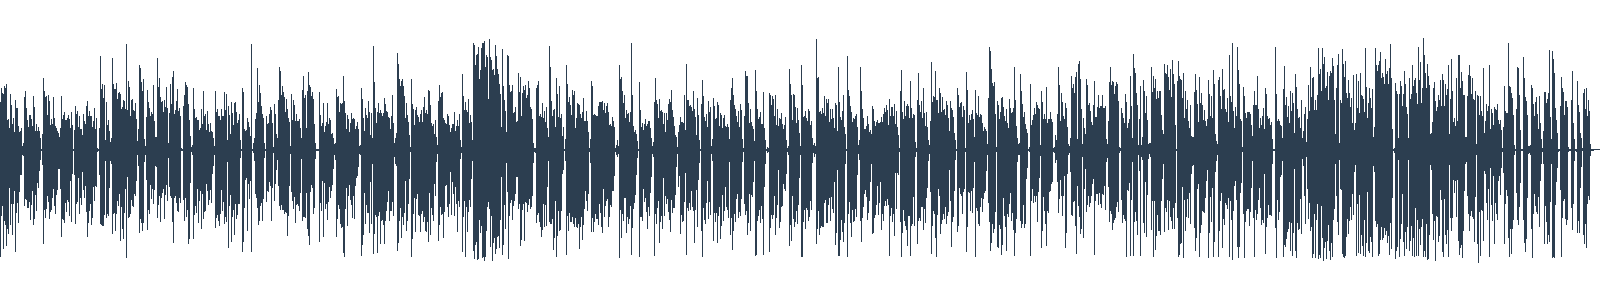 Herman waveform